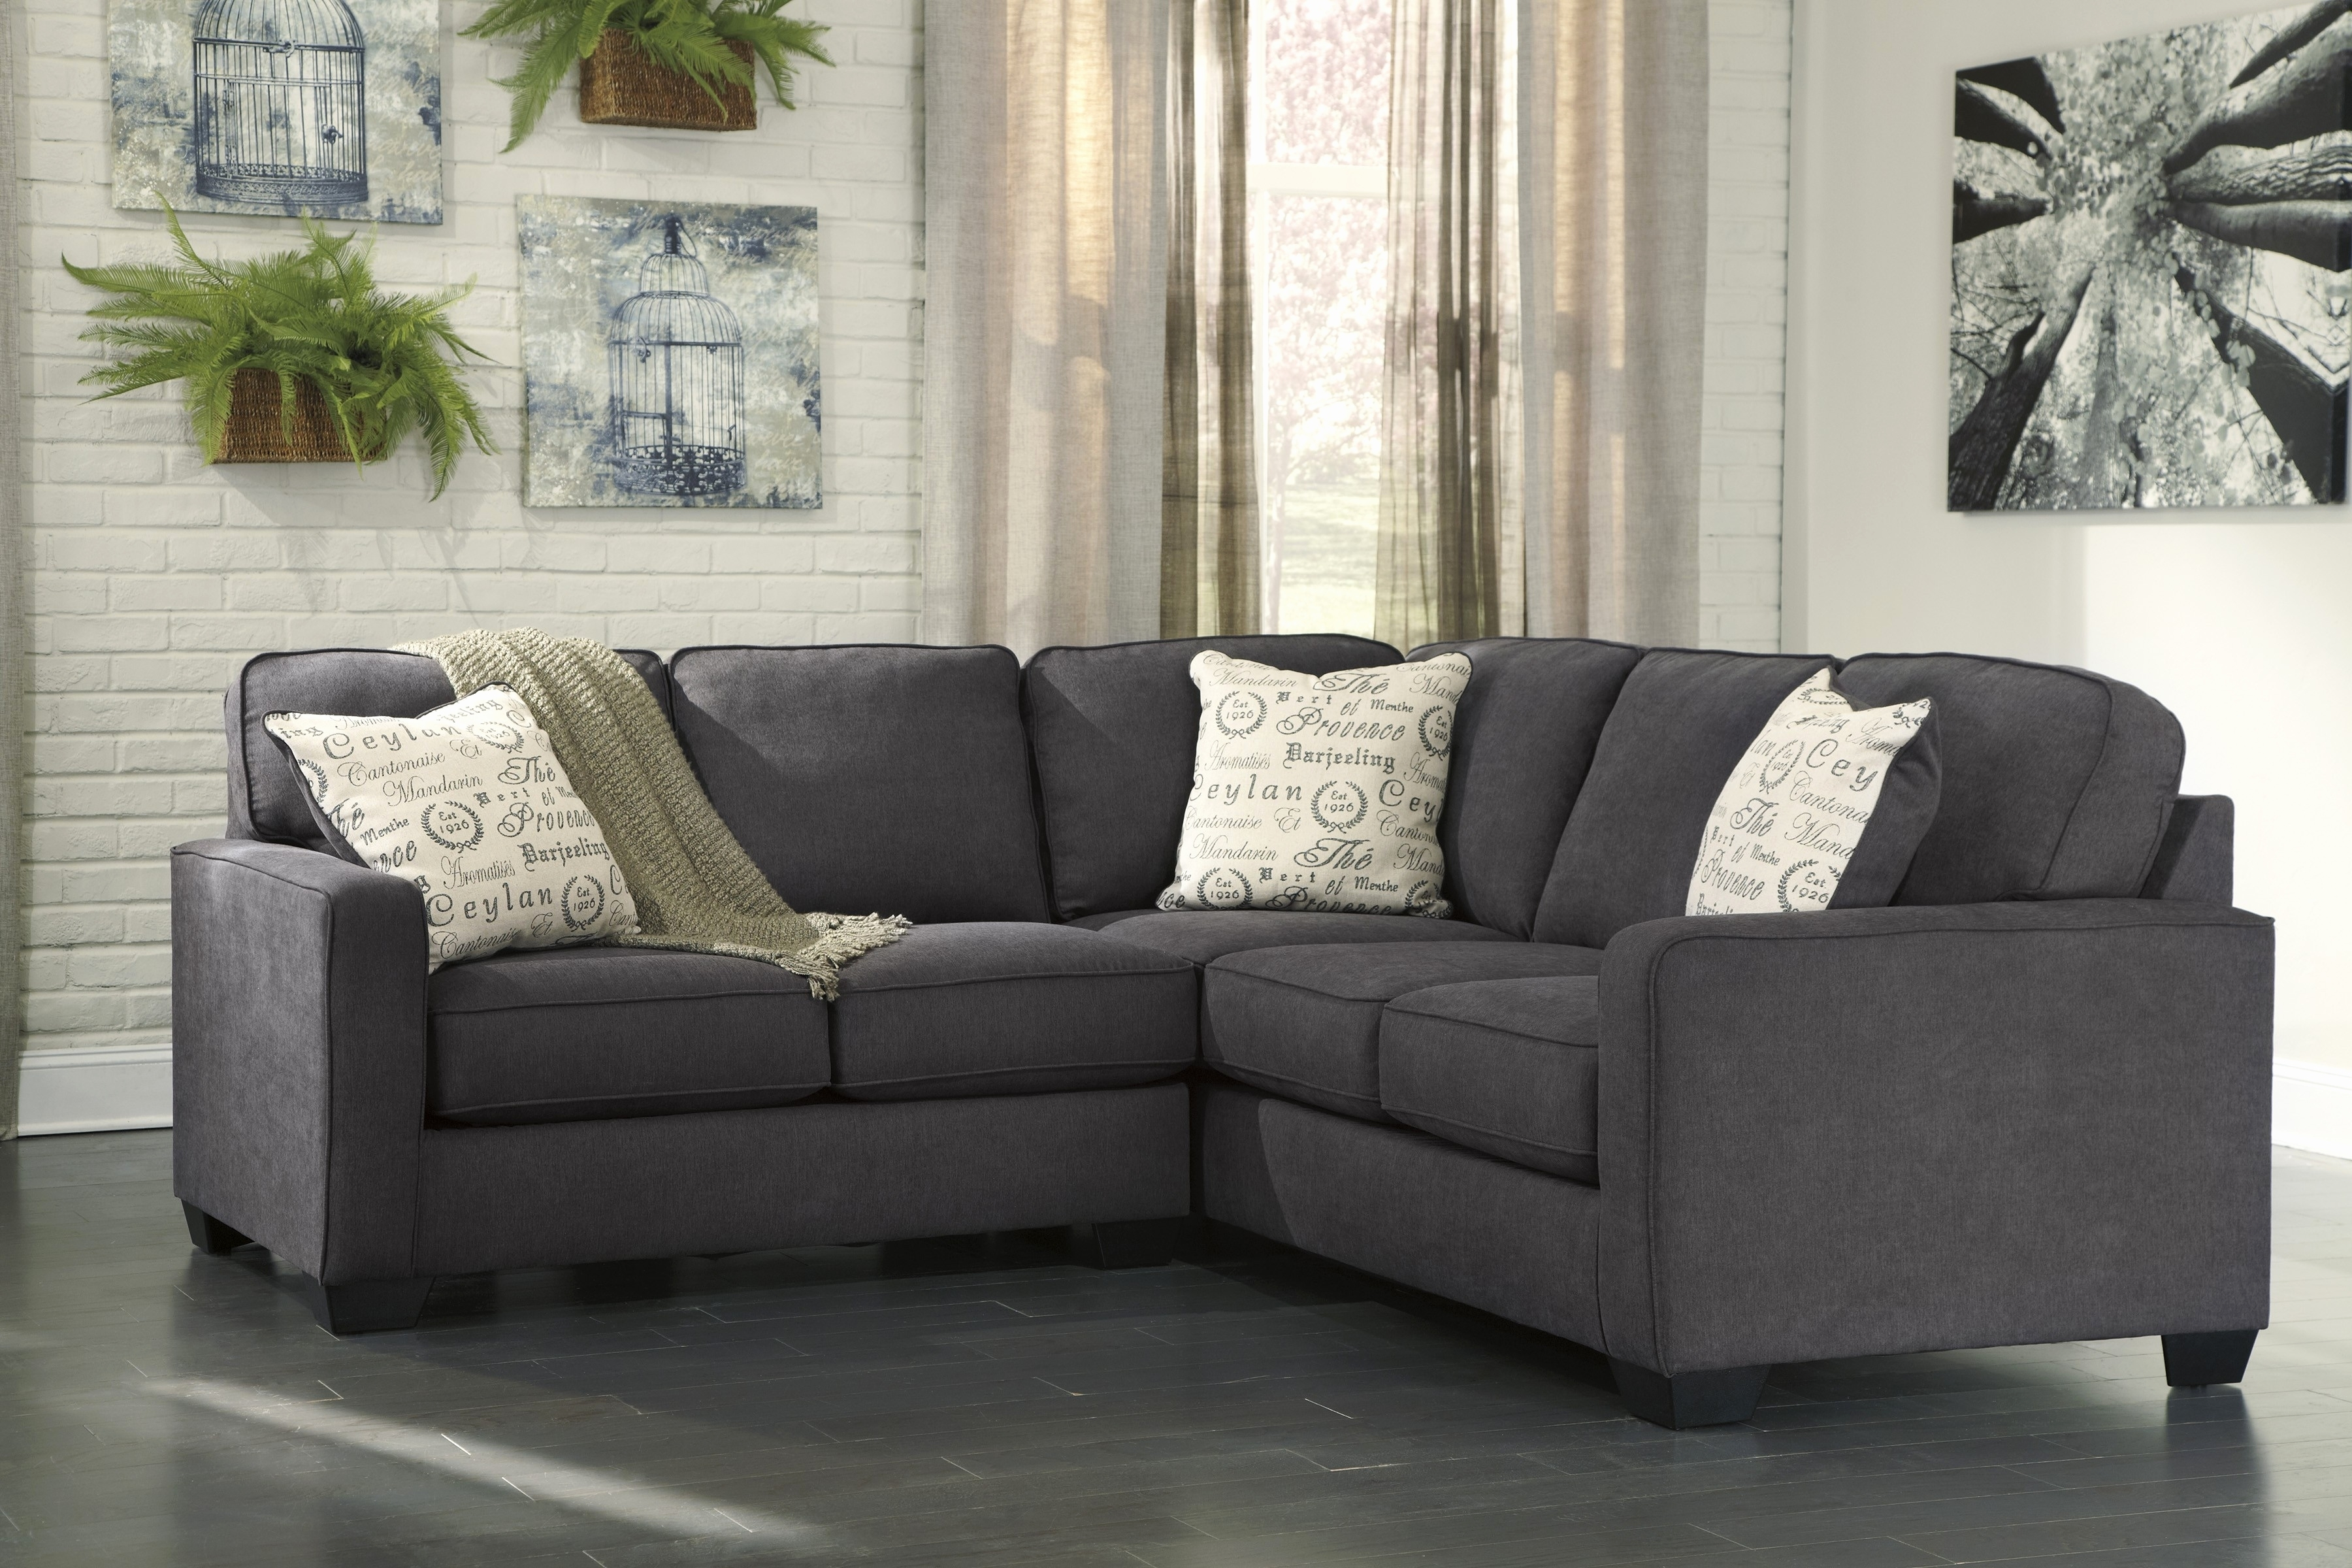 Best Compact Sectional Couch 2018 – Couches And Sofas Ideas Pertaining To Good Quality Sectional Sofas (View 9 of 10)